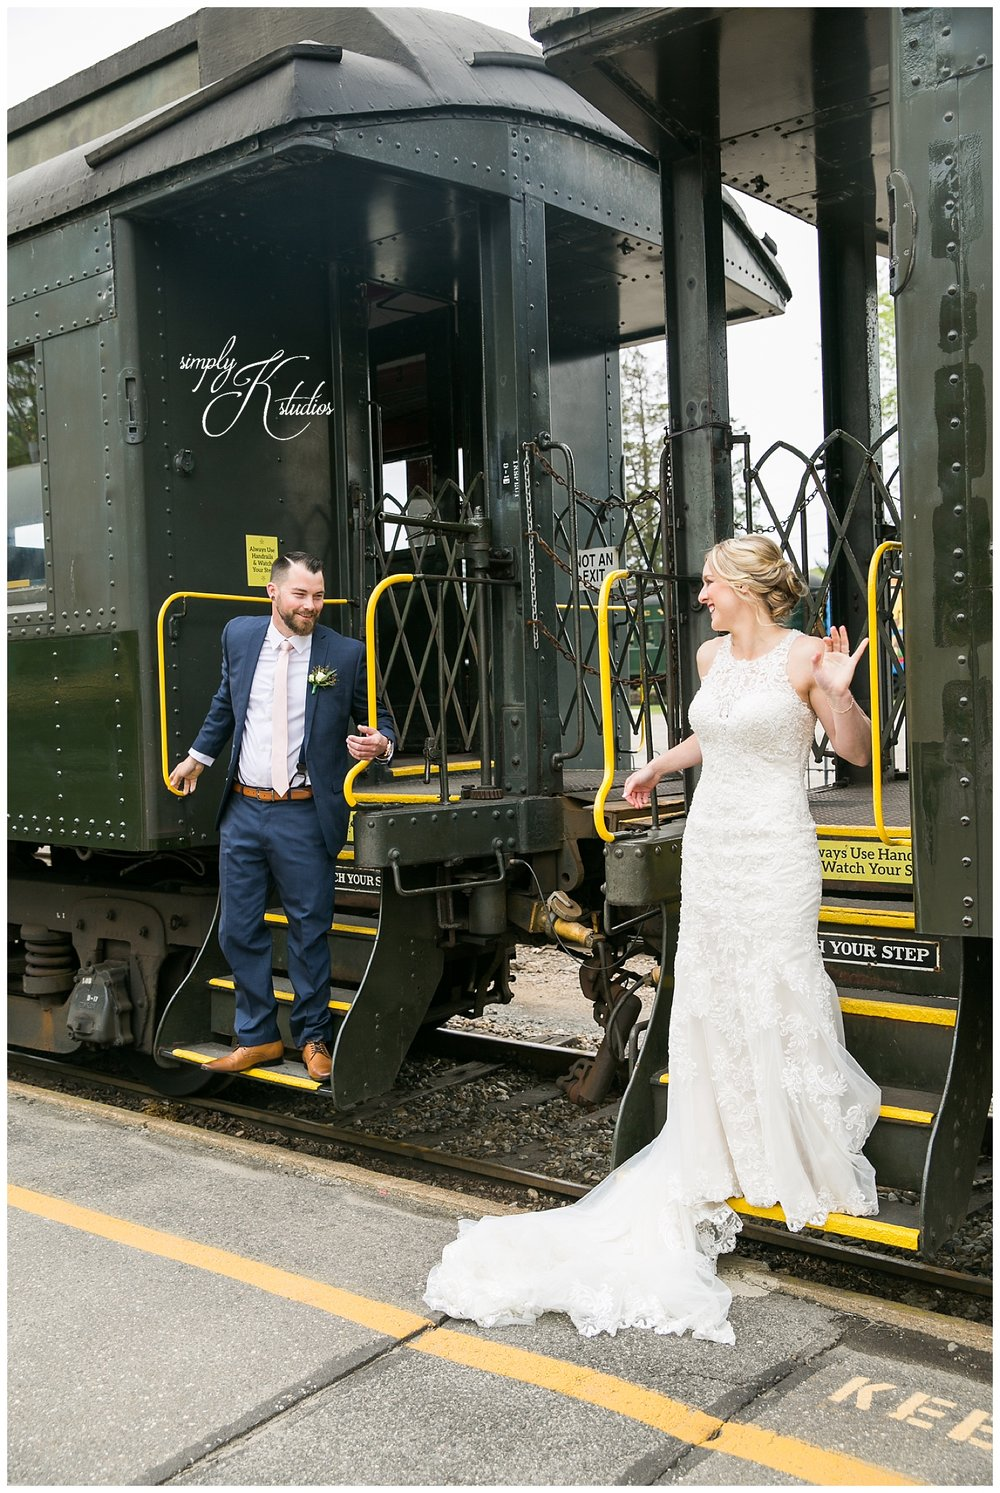 Essex Steam Train Wedding.jpg